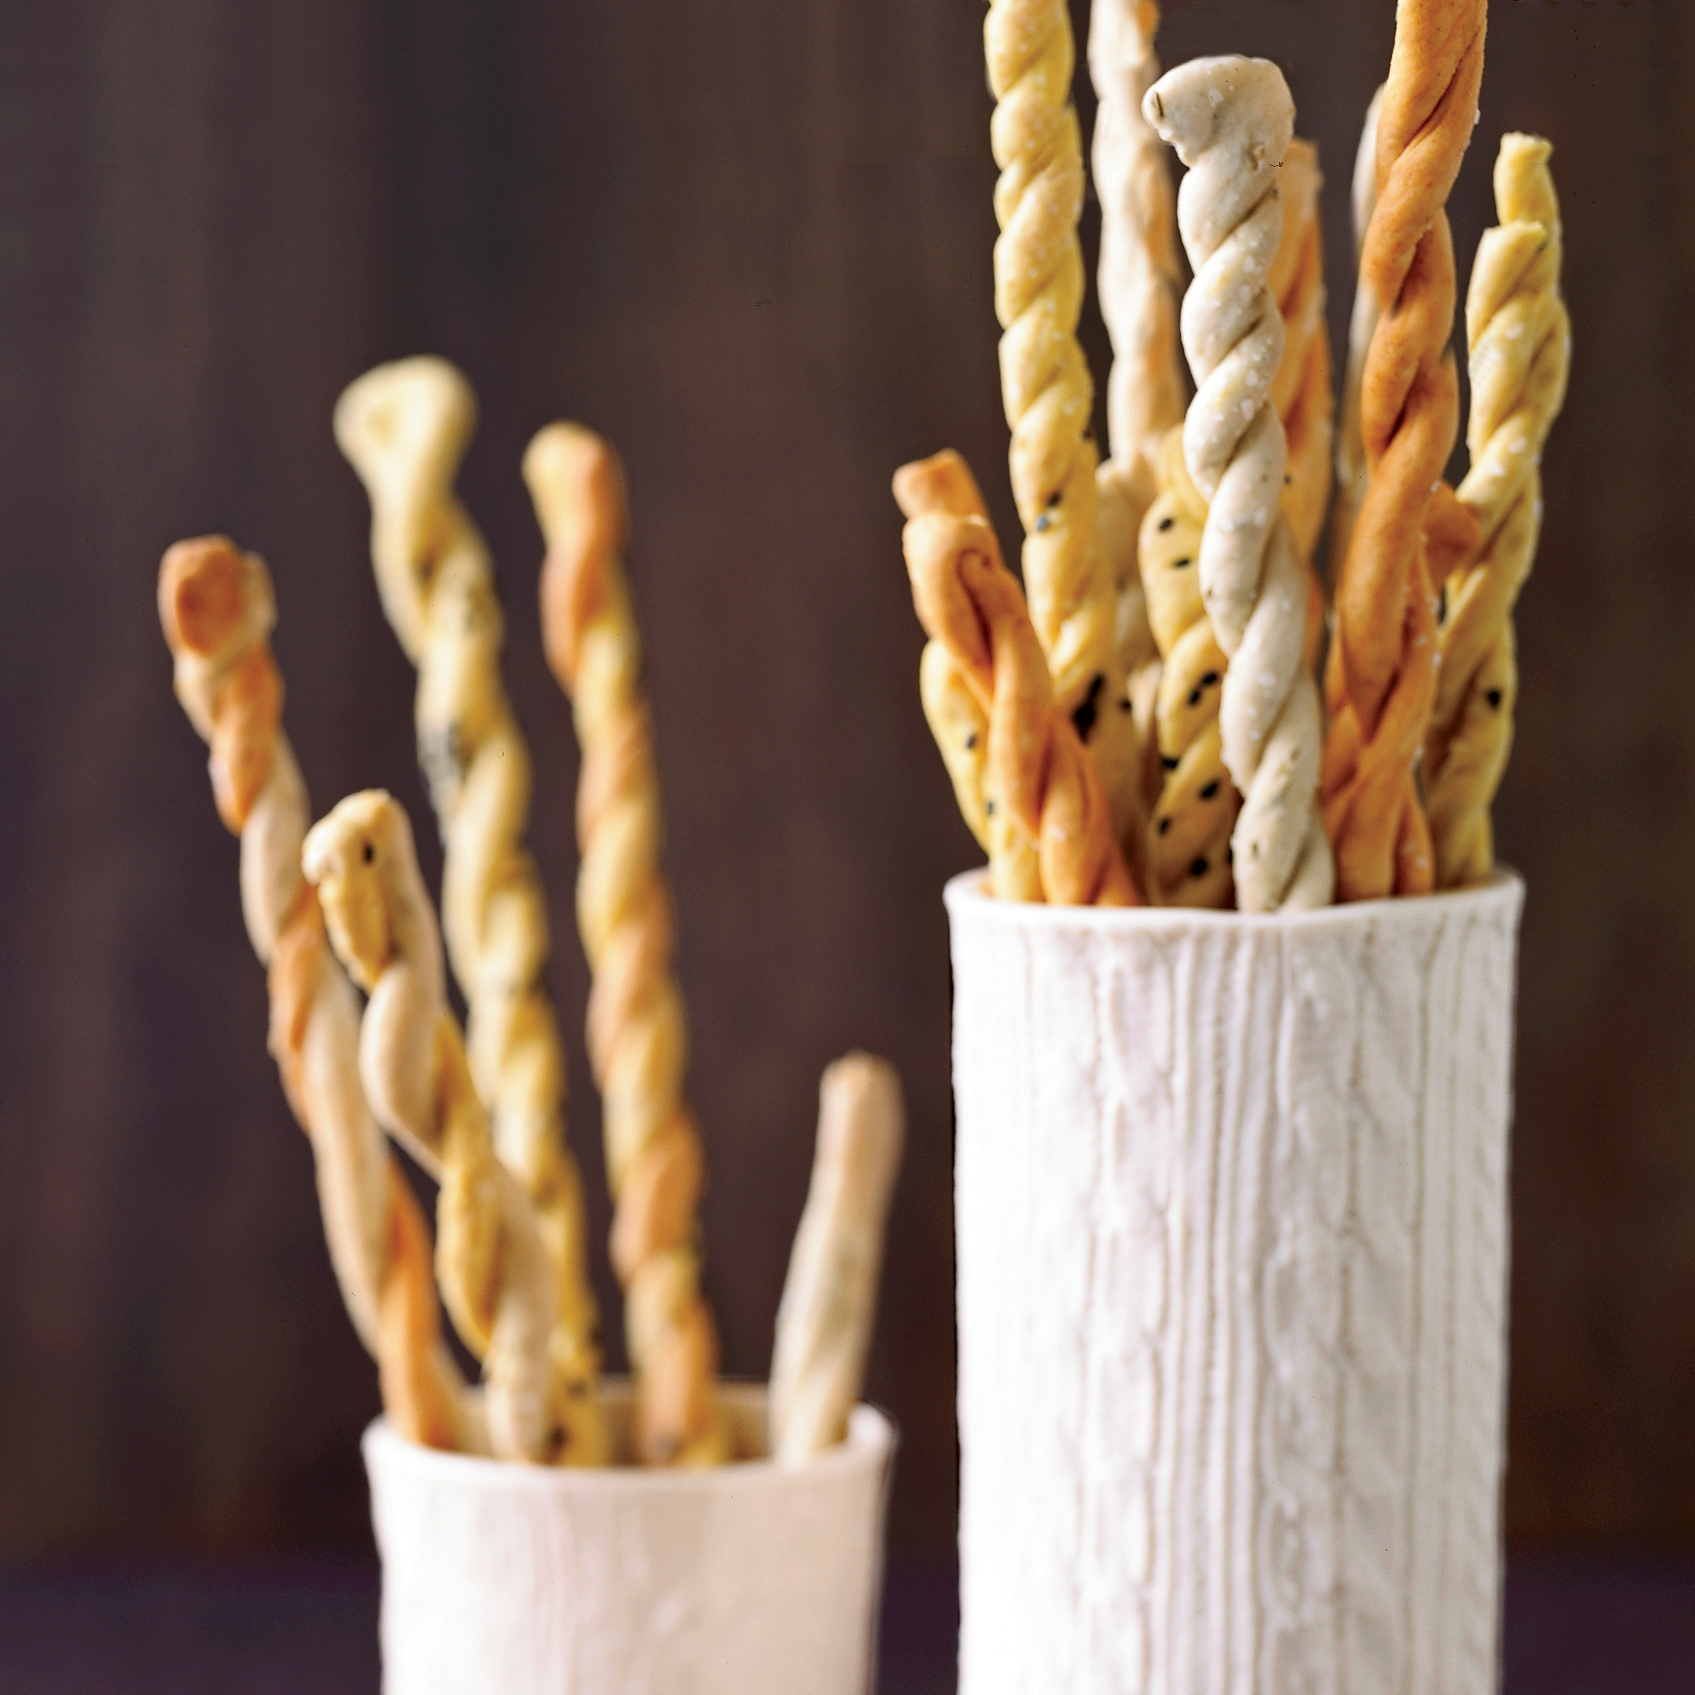 Breadstick Twists Recipe Susan Spungen Food Amp Wine